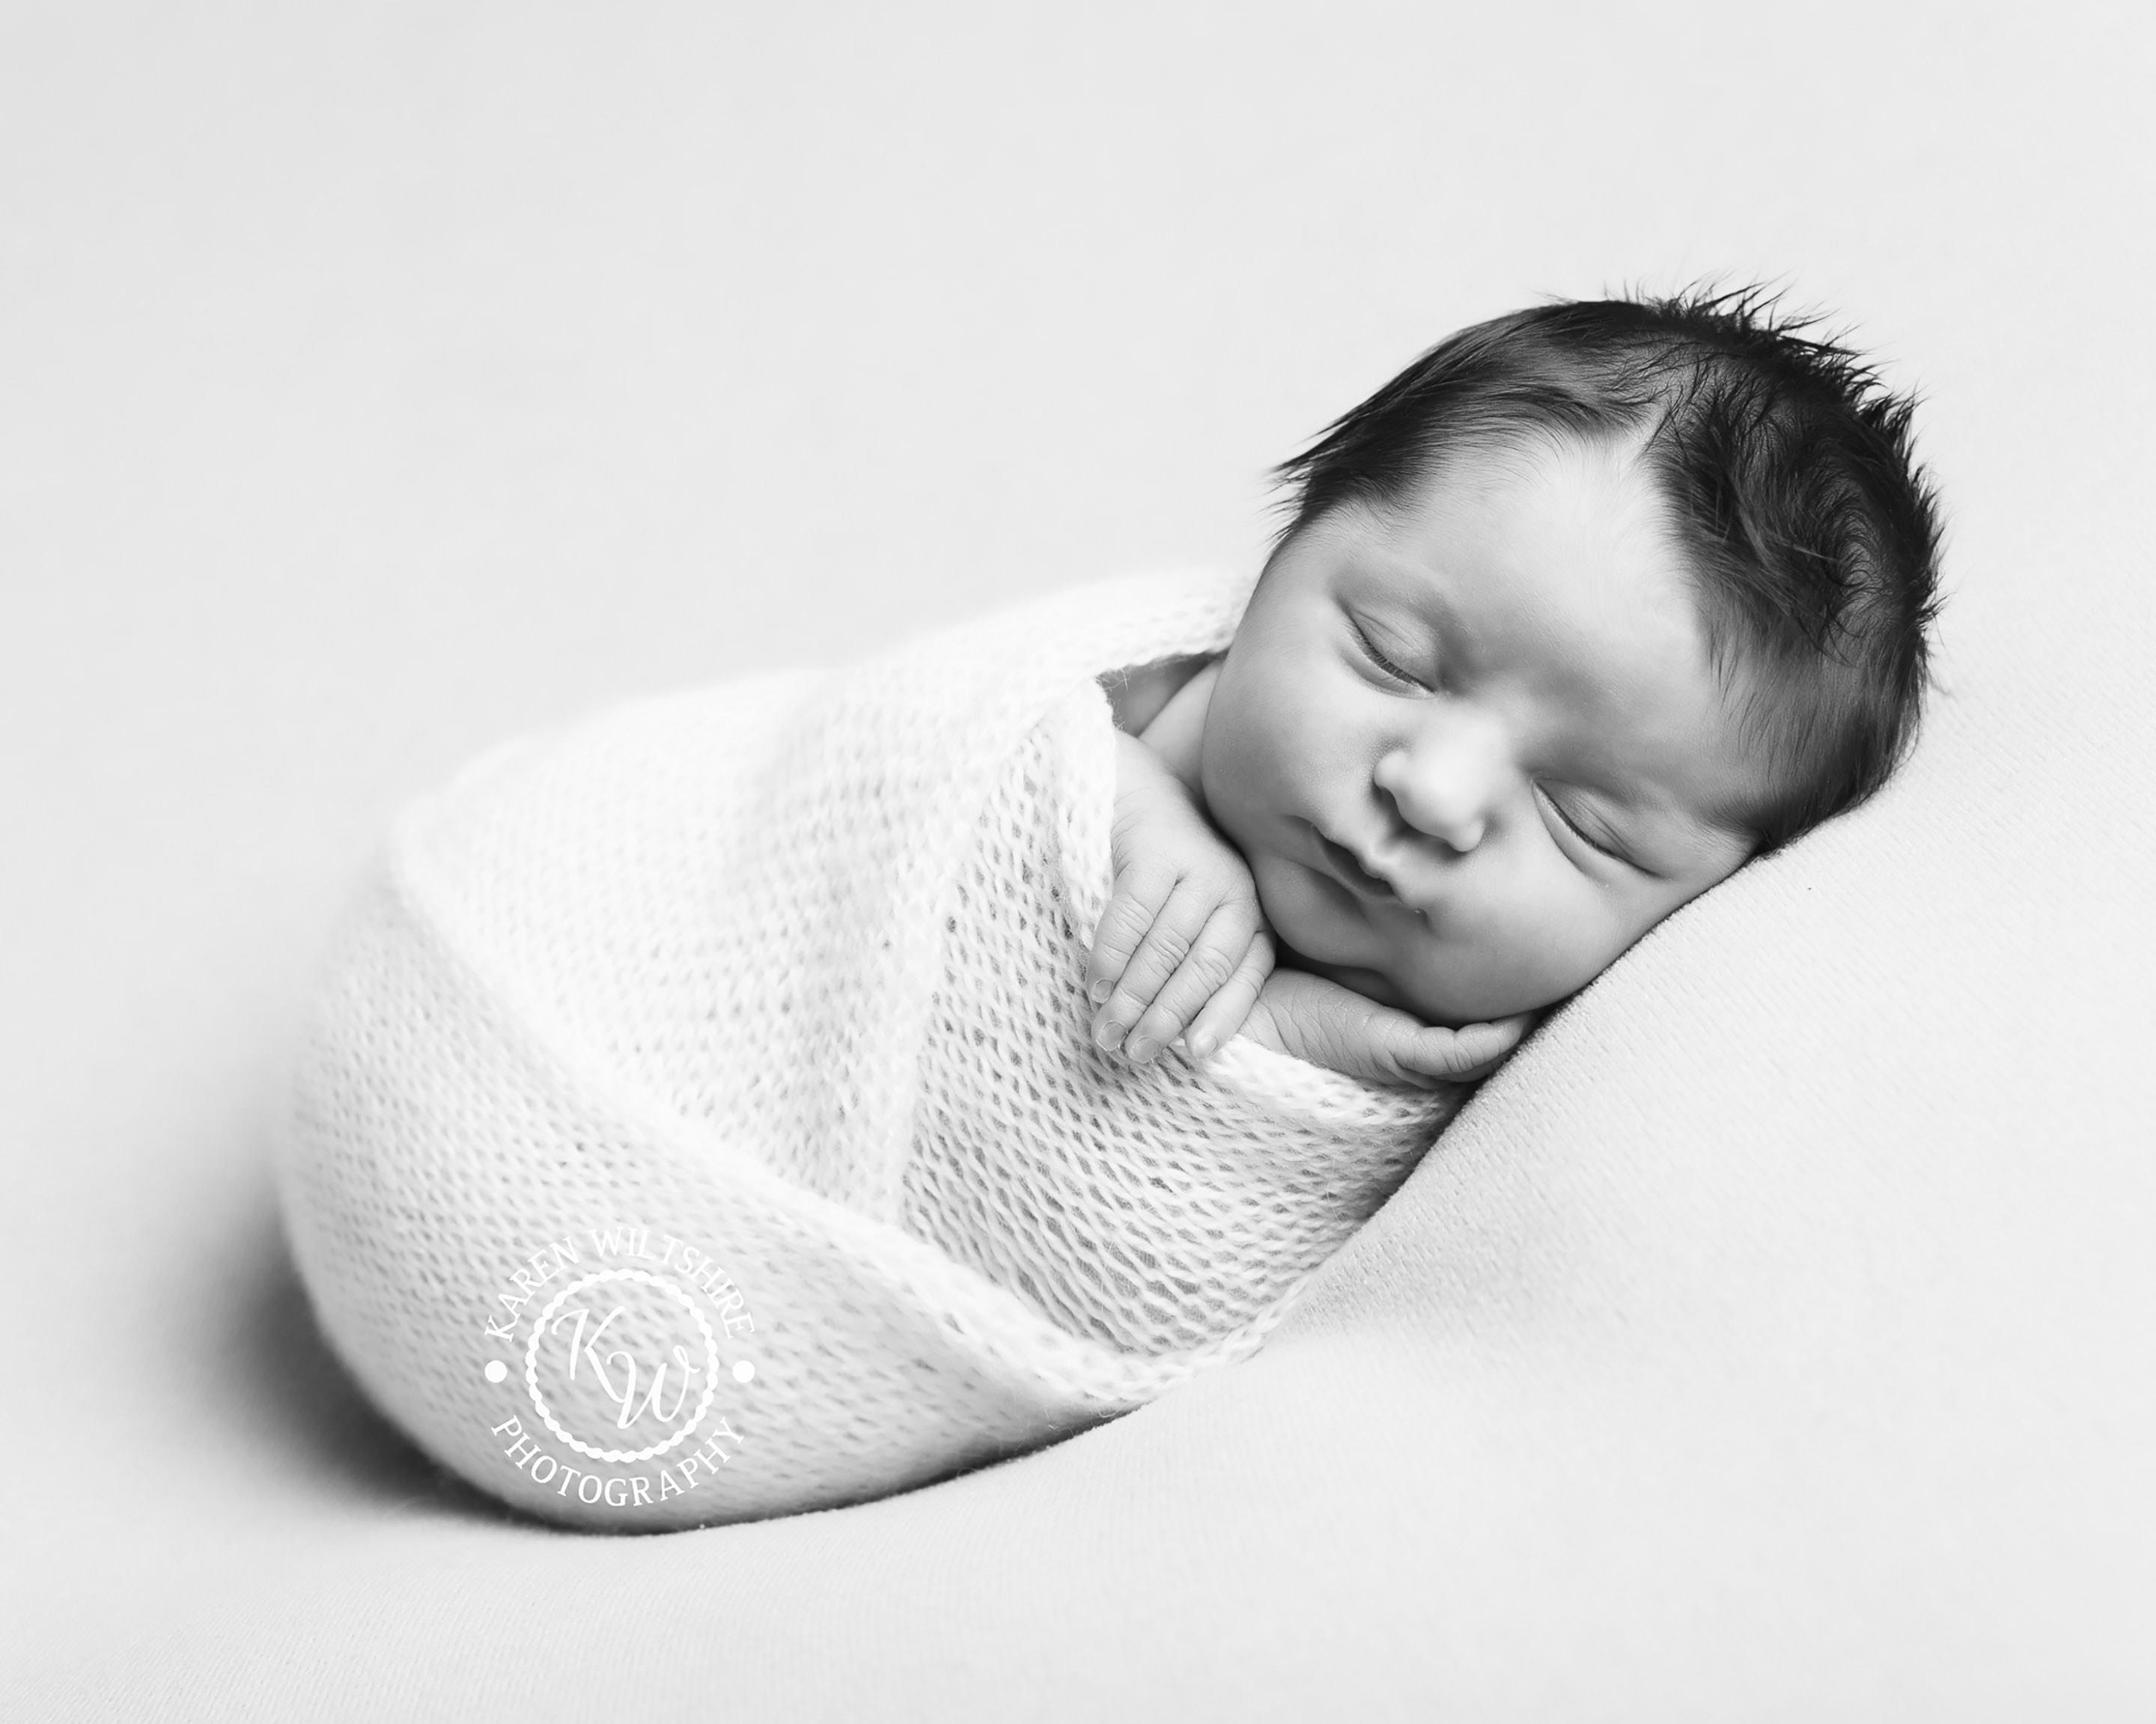 Newborn baby wrapped in white knitted blanket